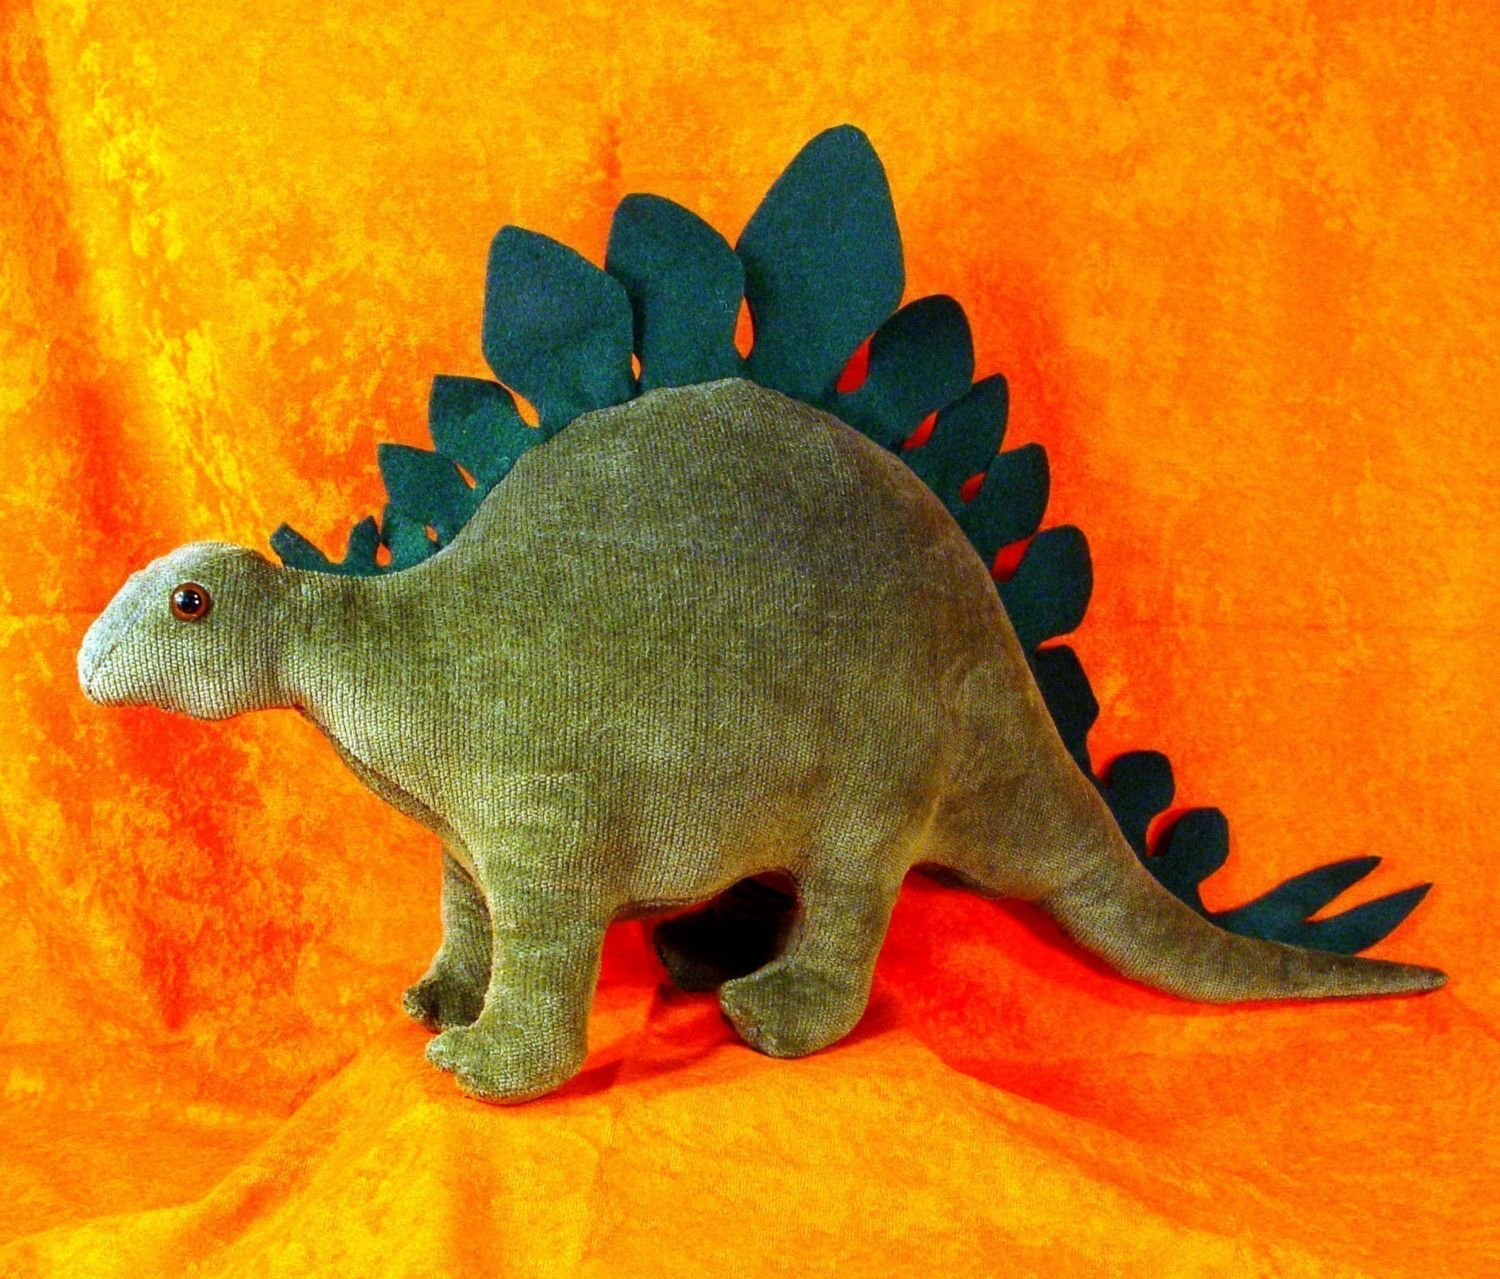 Sewing pattern to make a stegosaurus dinosaur stuffed animal soft sewing pattern to make a stegosaurus dinosaur stuffed animal soft toy jeuxipadfo Image collections